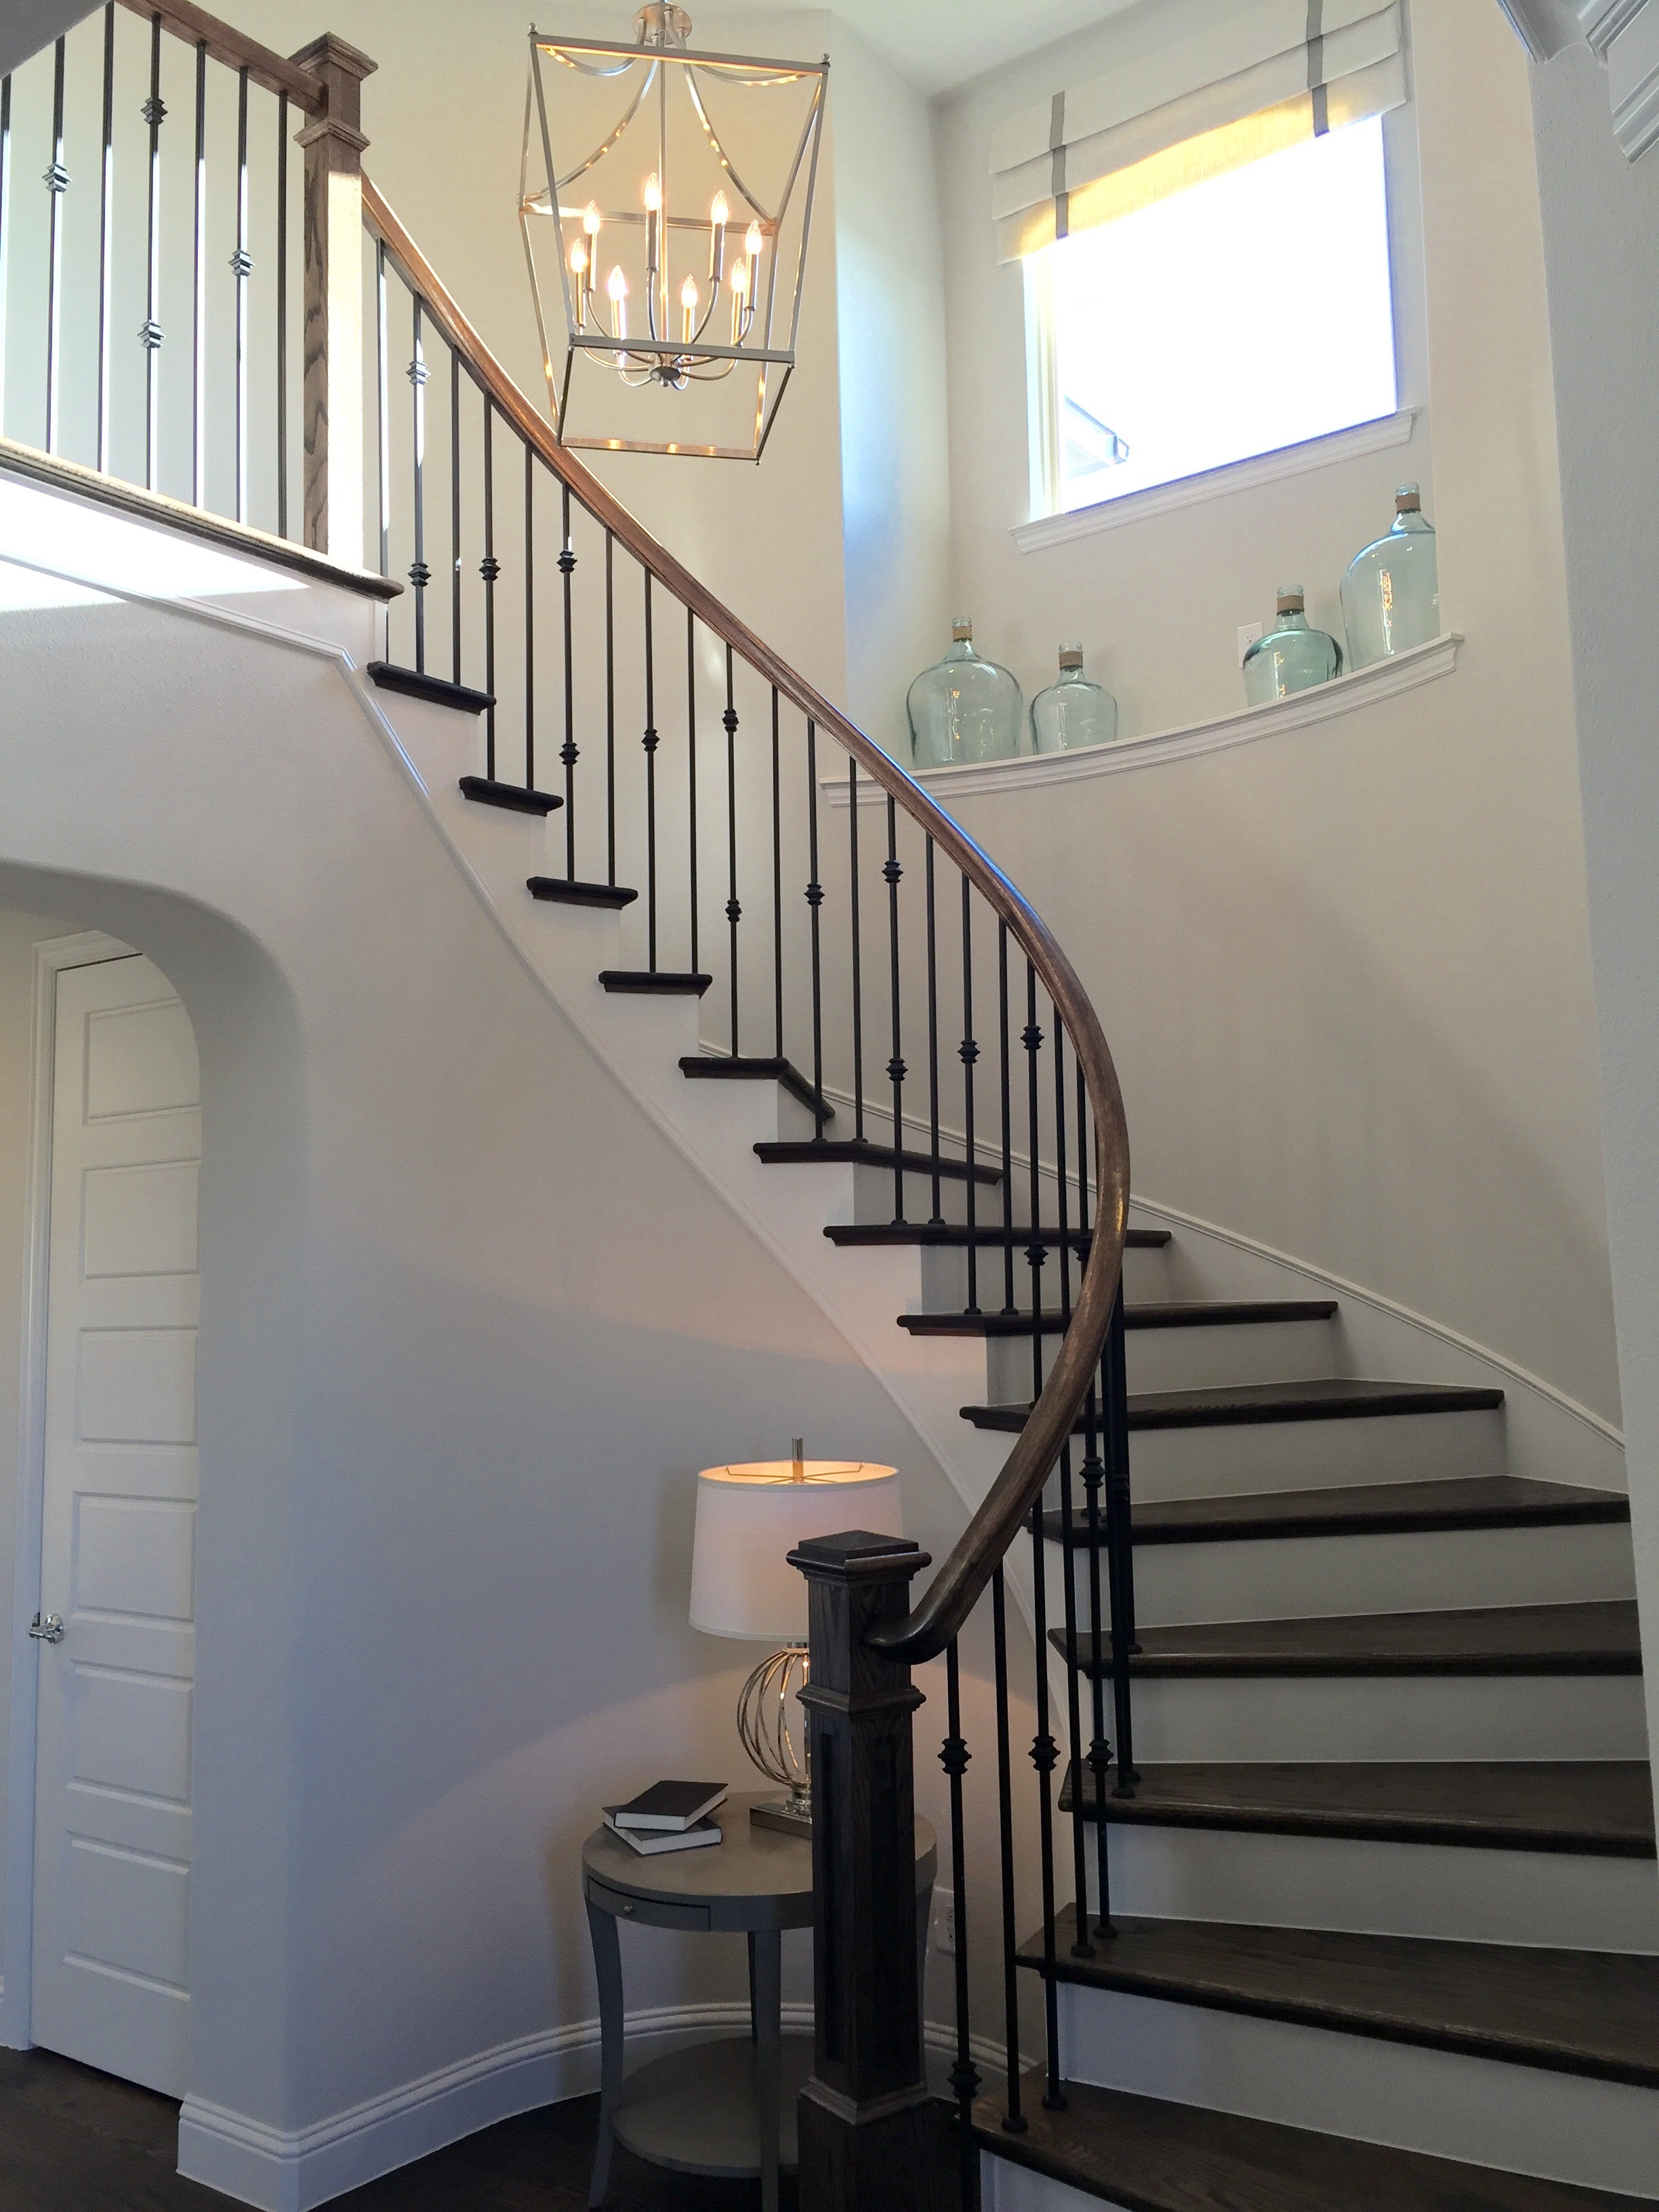 Saxony homes inspiration update frisco richwoods for Saxony homes